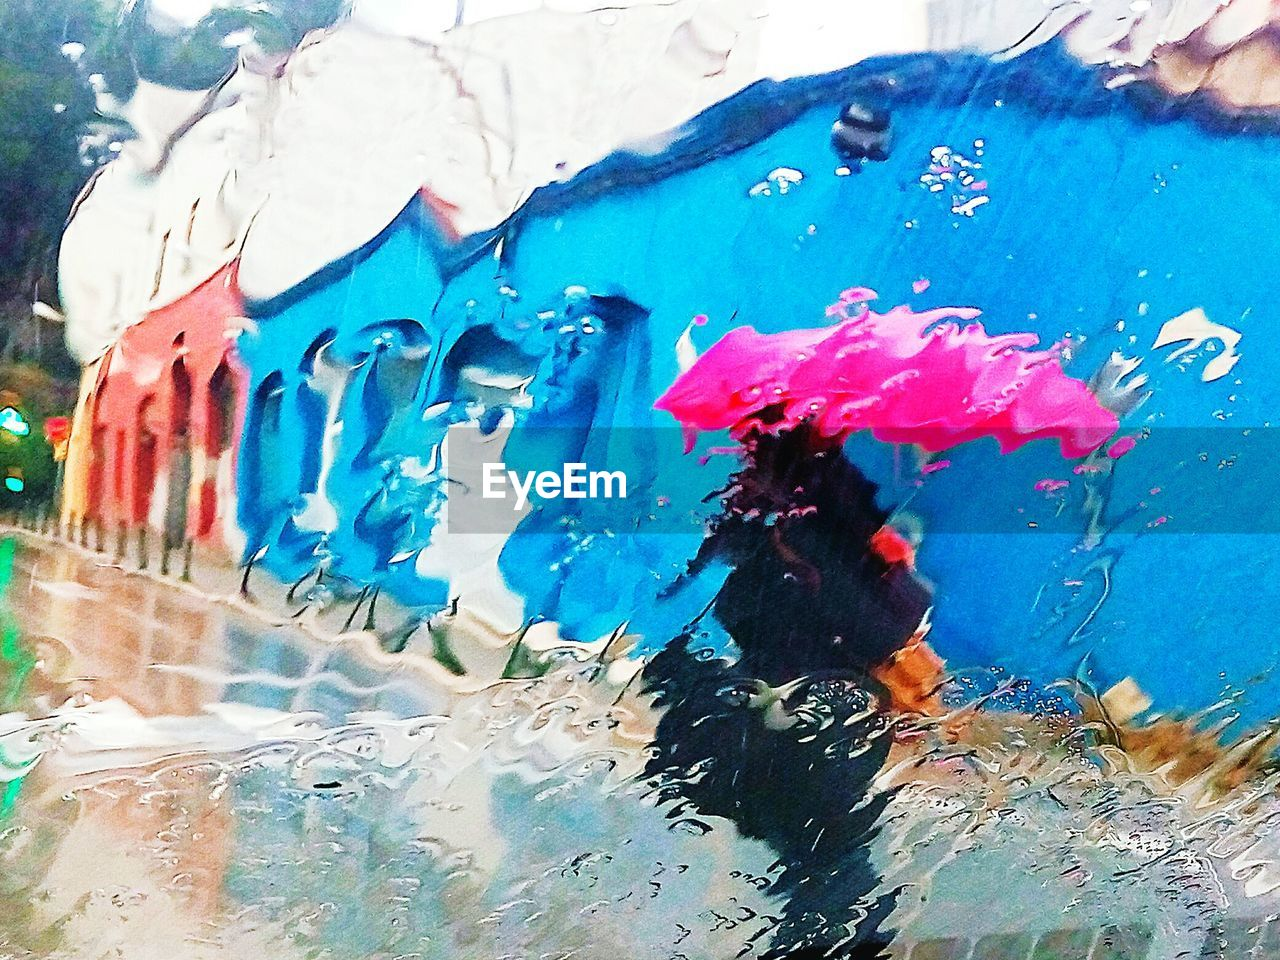 water, day, real people, outdoors, swimming pool, blue, multi colored, one person, architecture, close-up